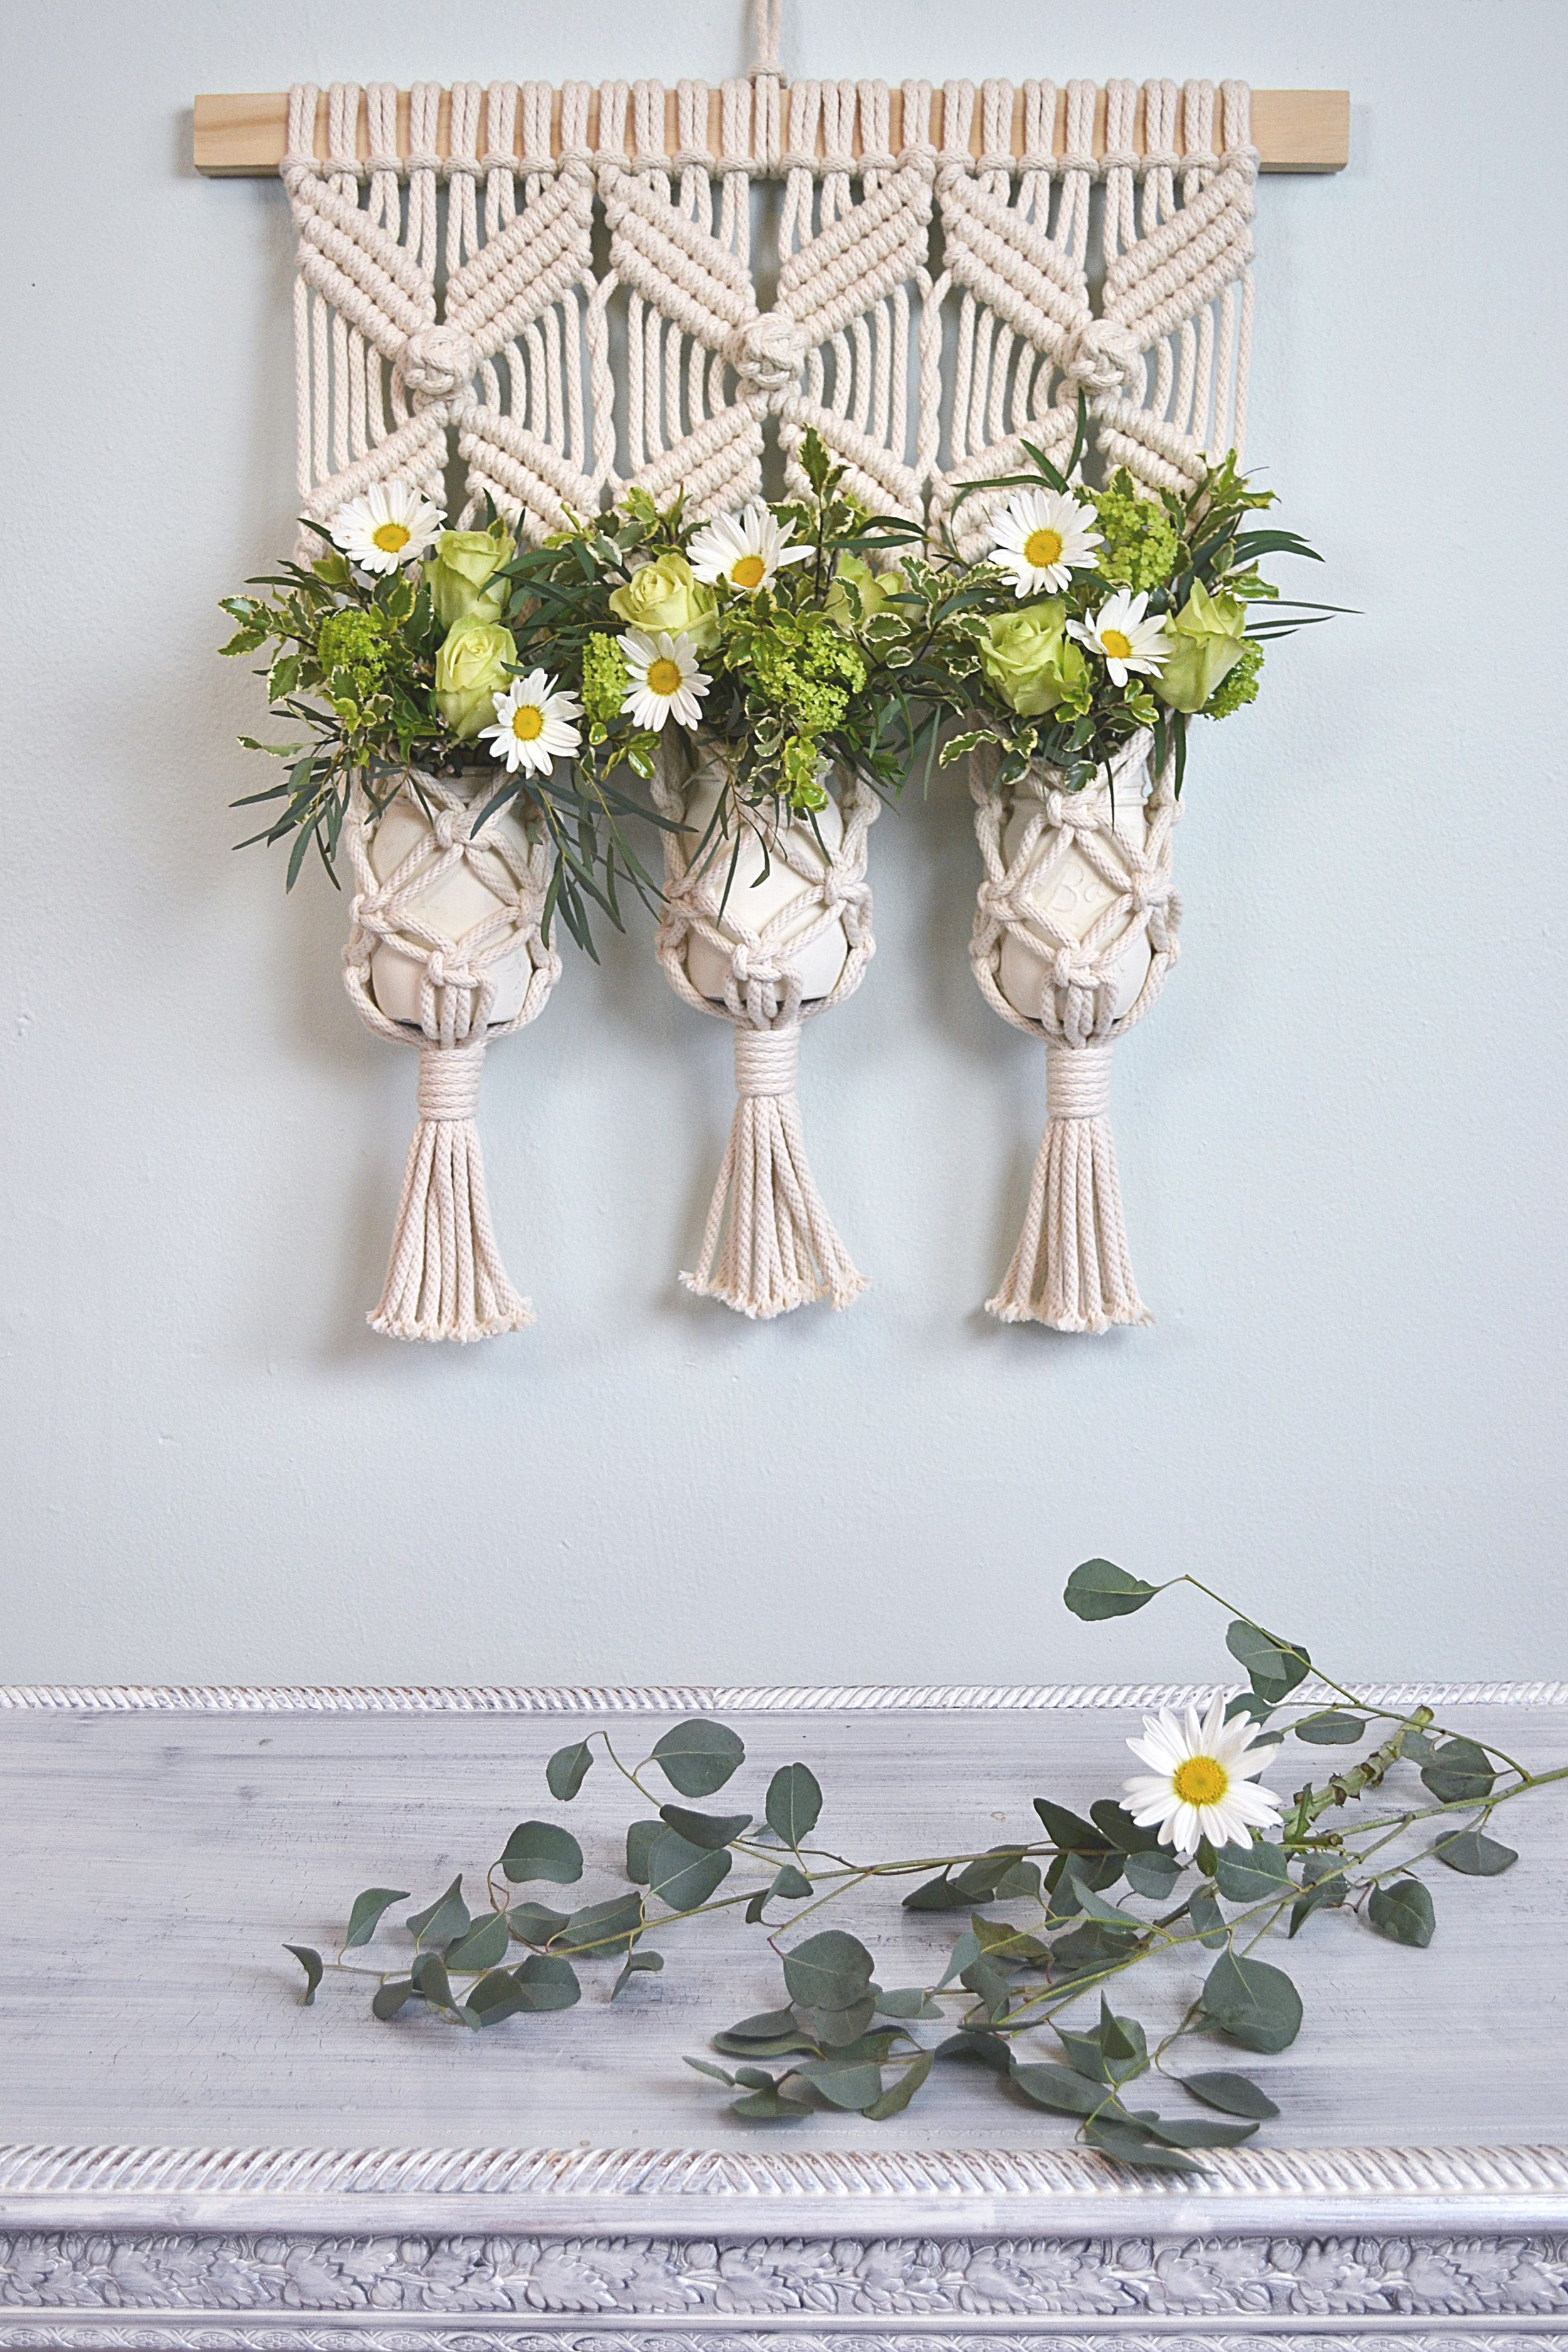 Wall Mounted Plant Holders Macrame Wall Hanging Plant Holder Decor Idea By Amy Zwikel